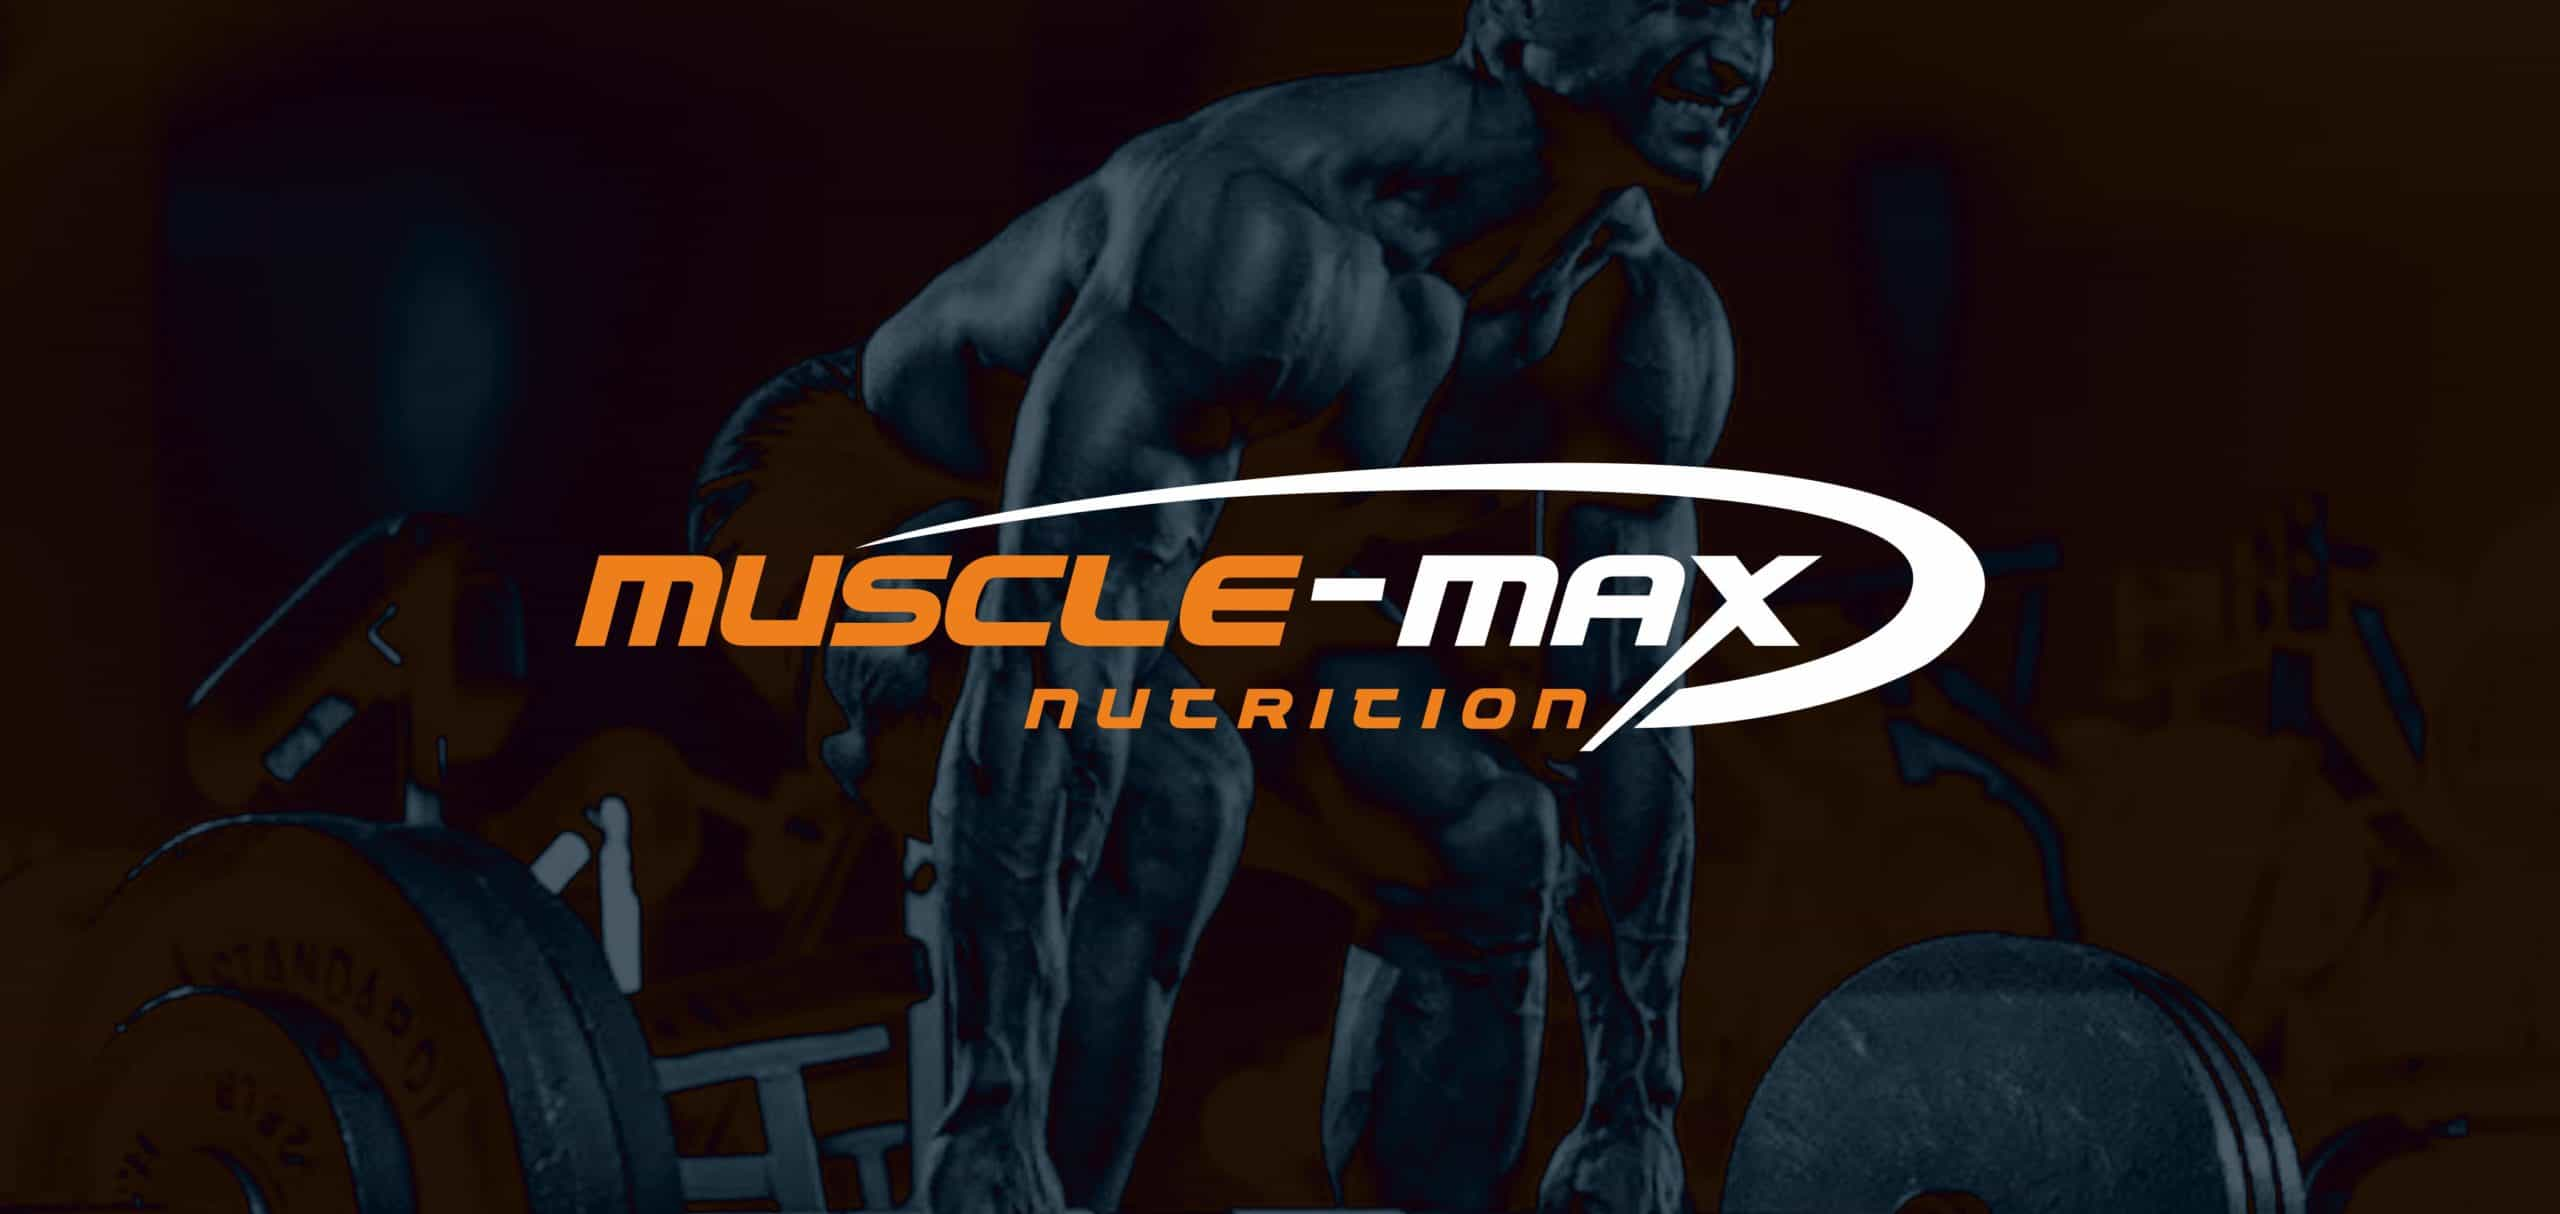 muscle max logo